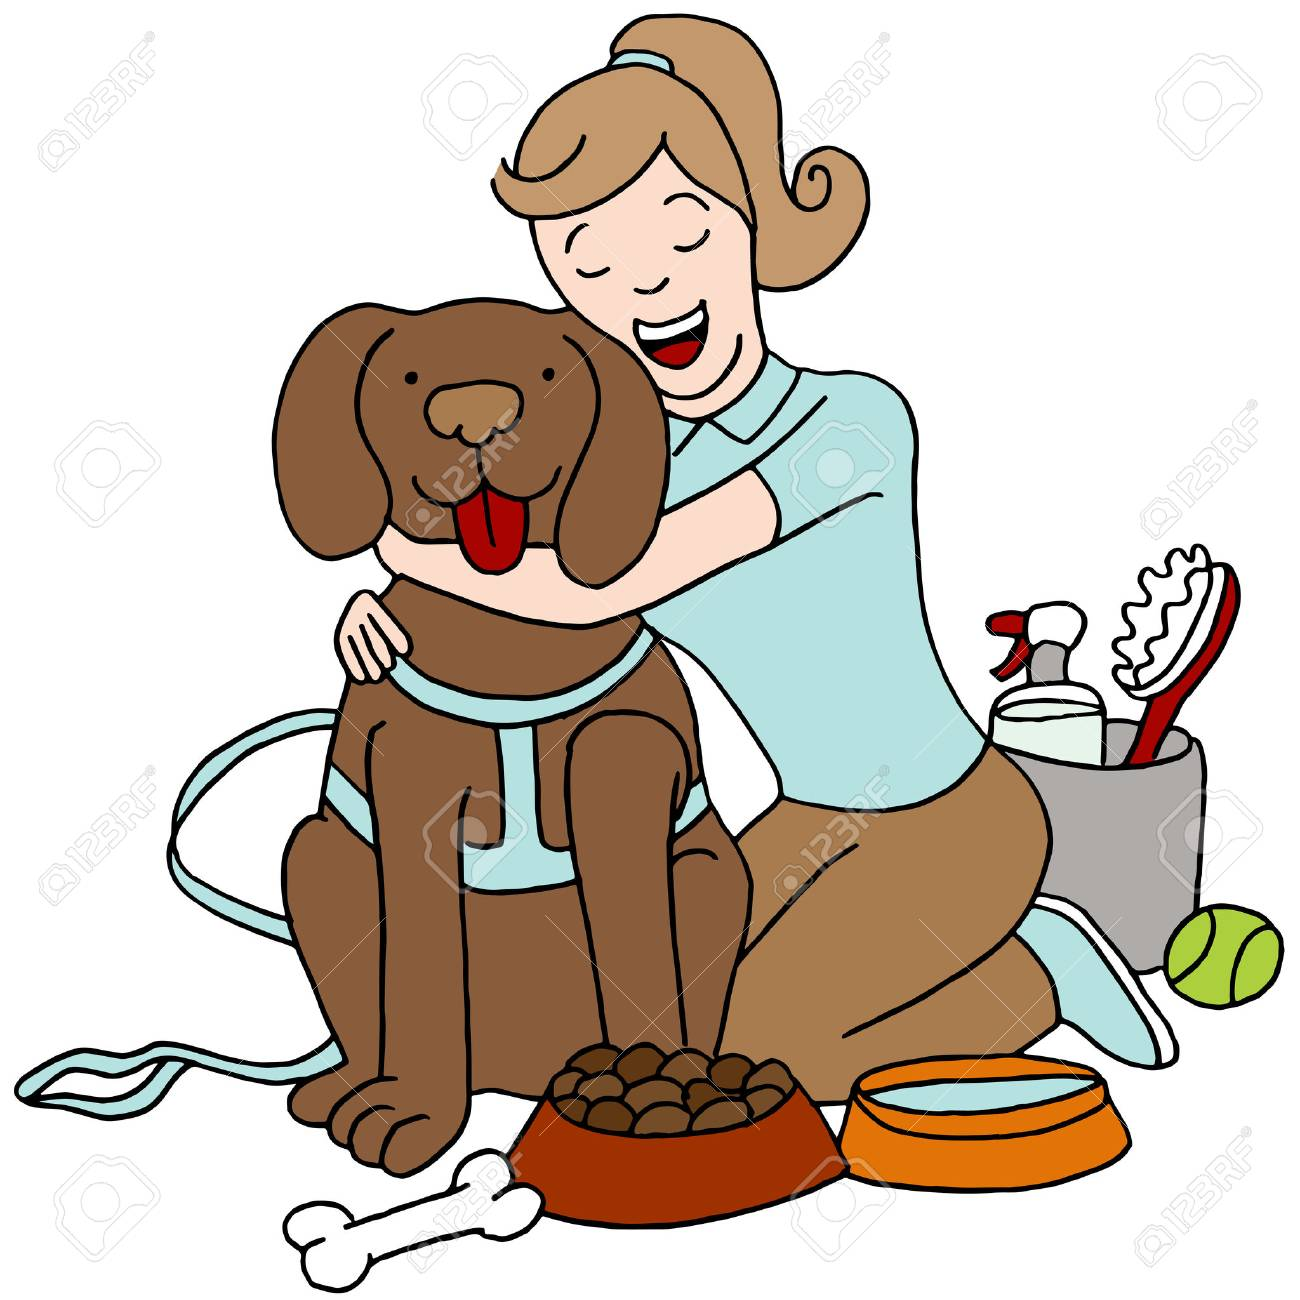 How To Take Care Of Animals Clipart.